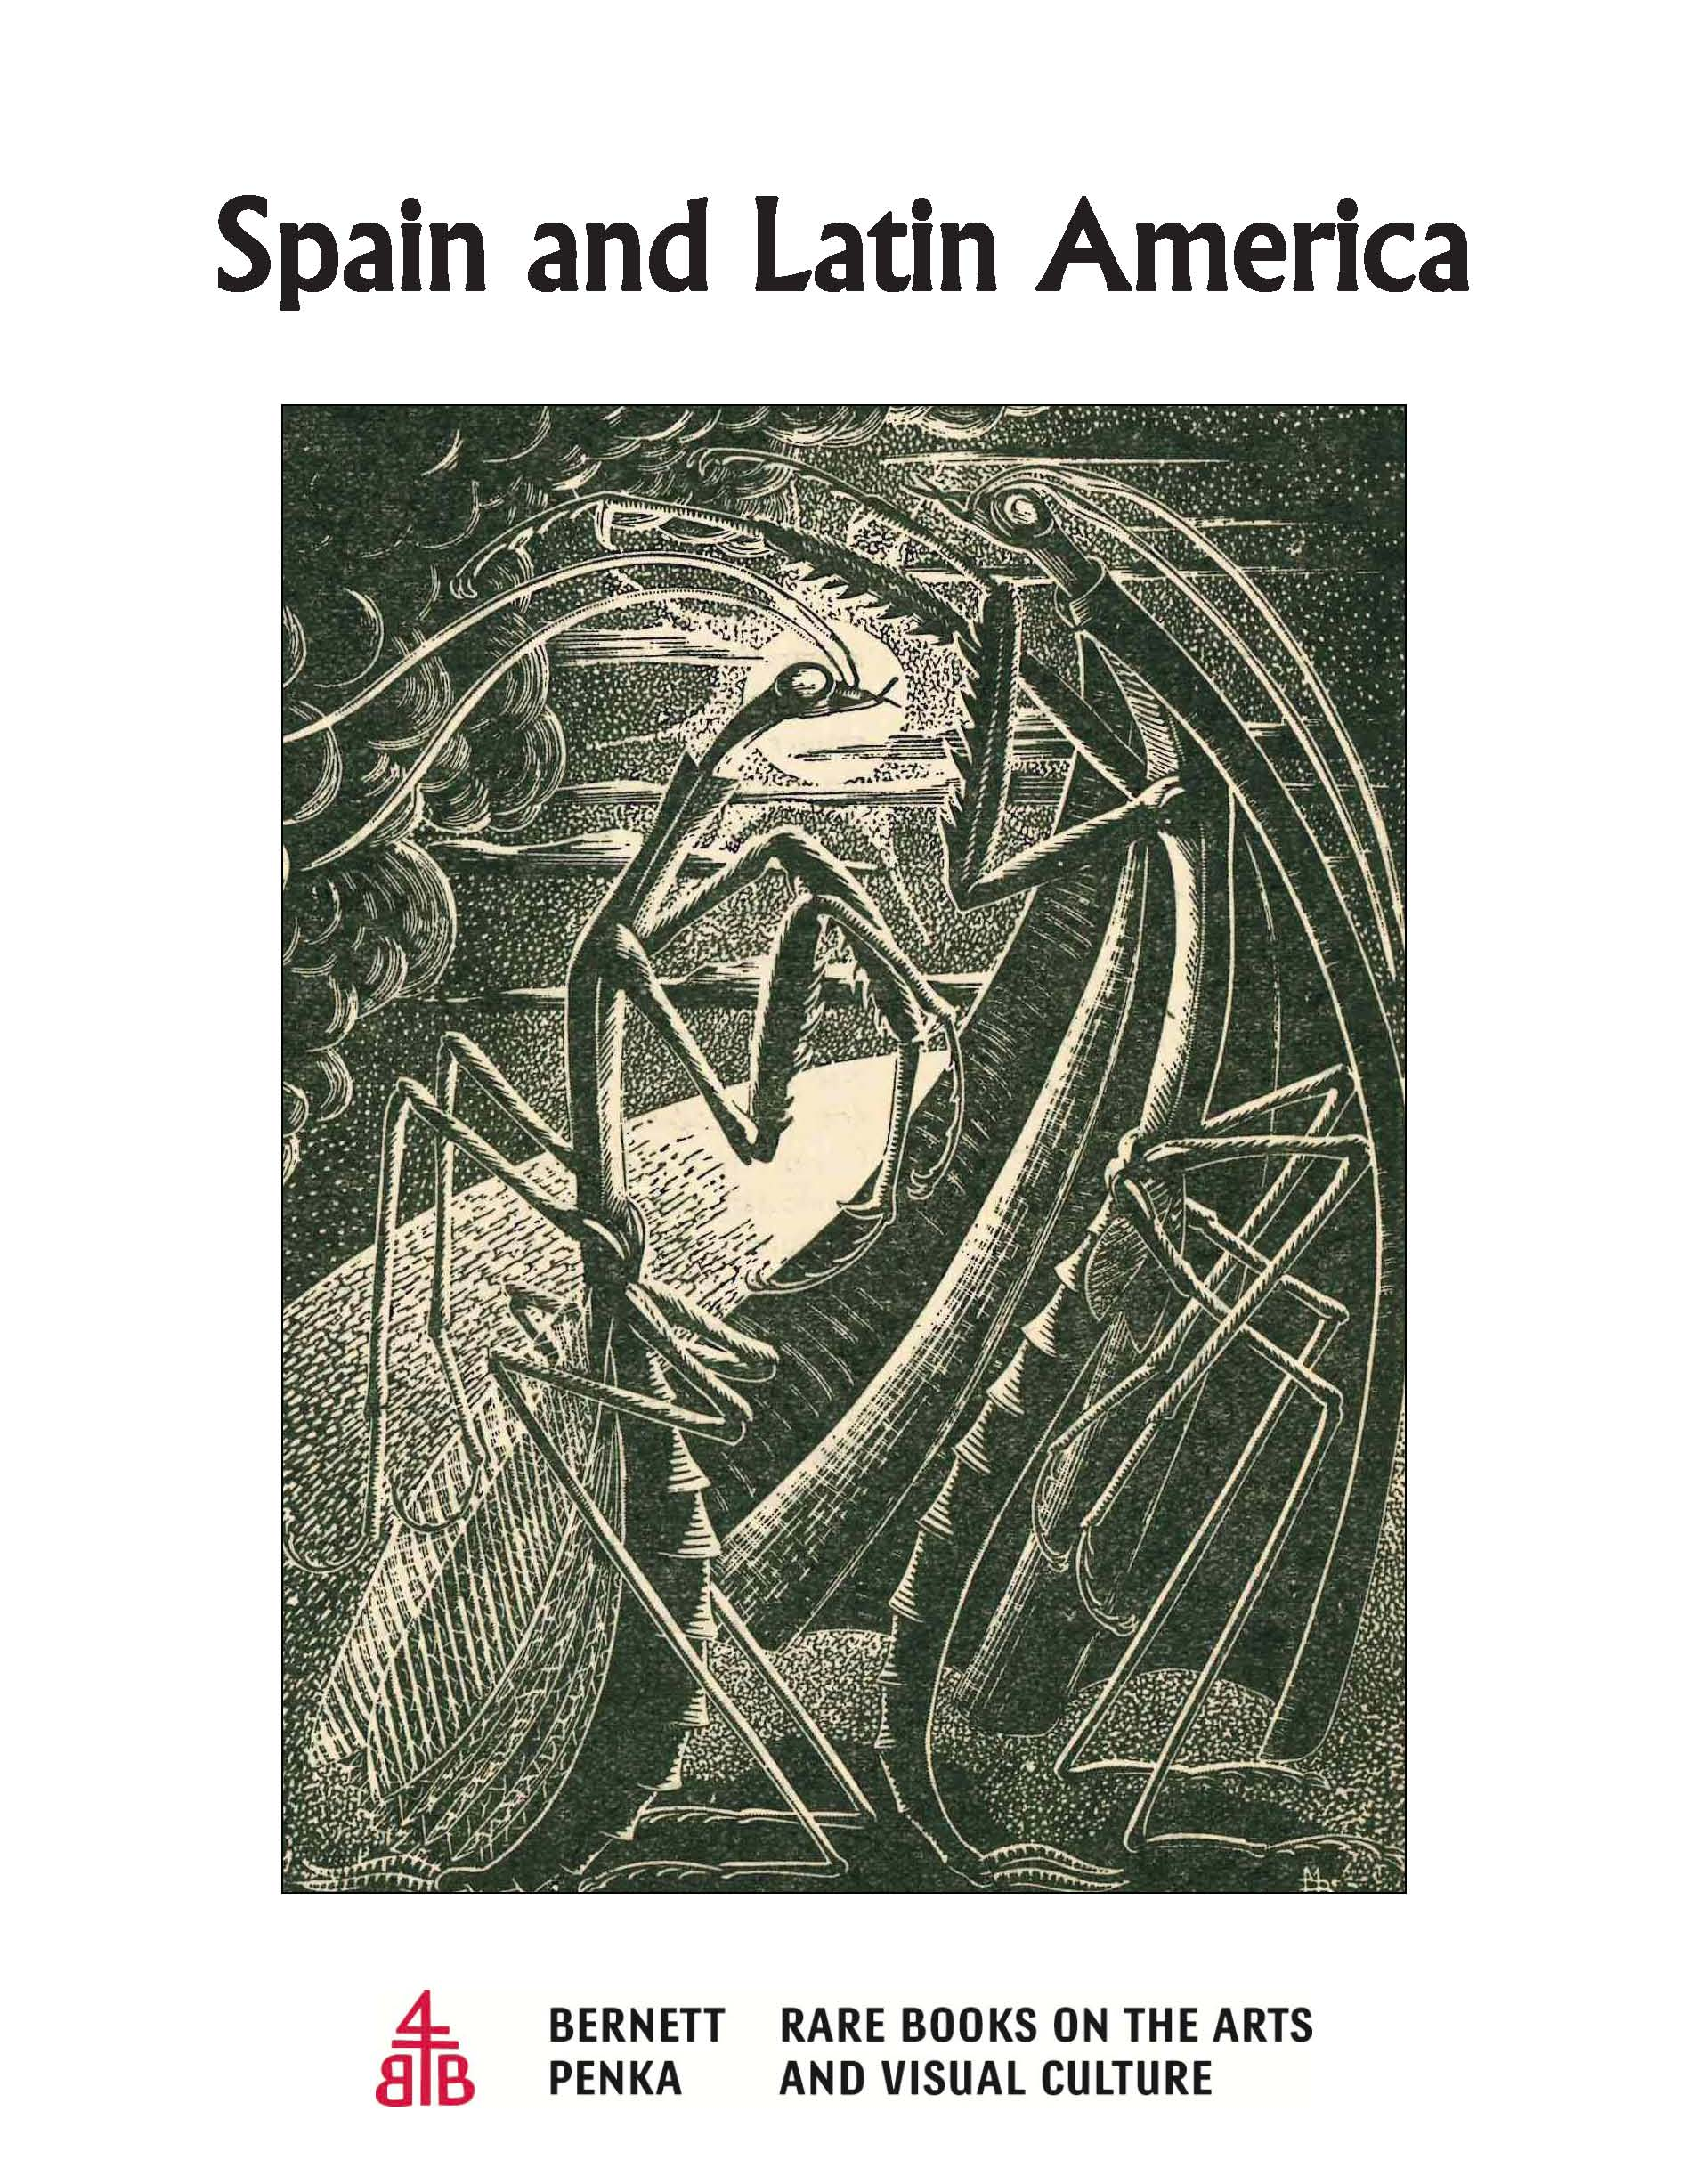 Spain and Latin America